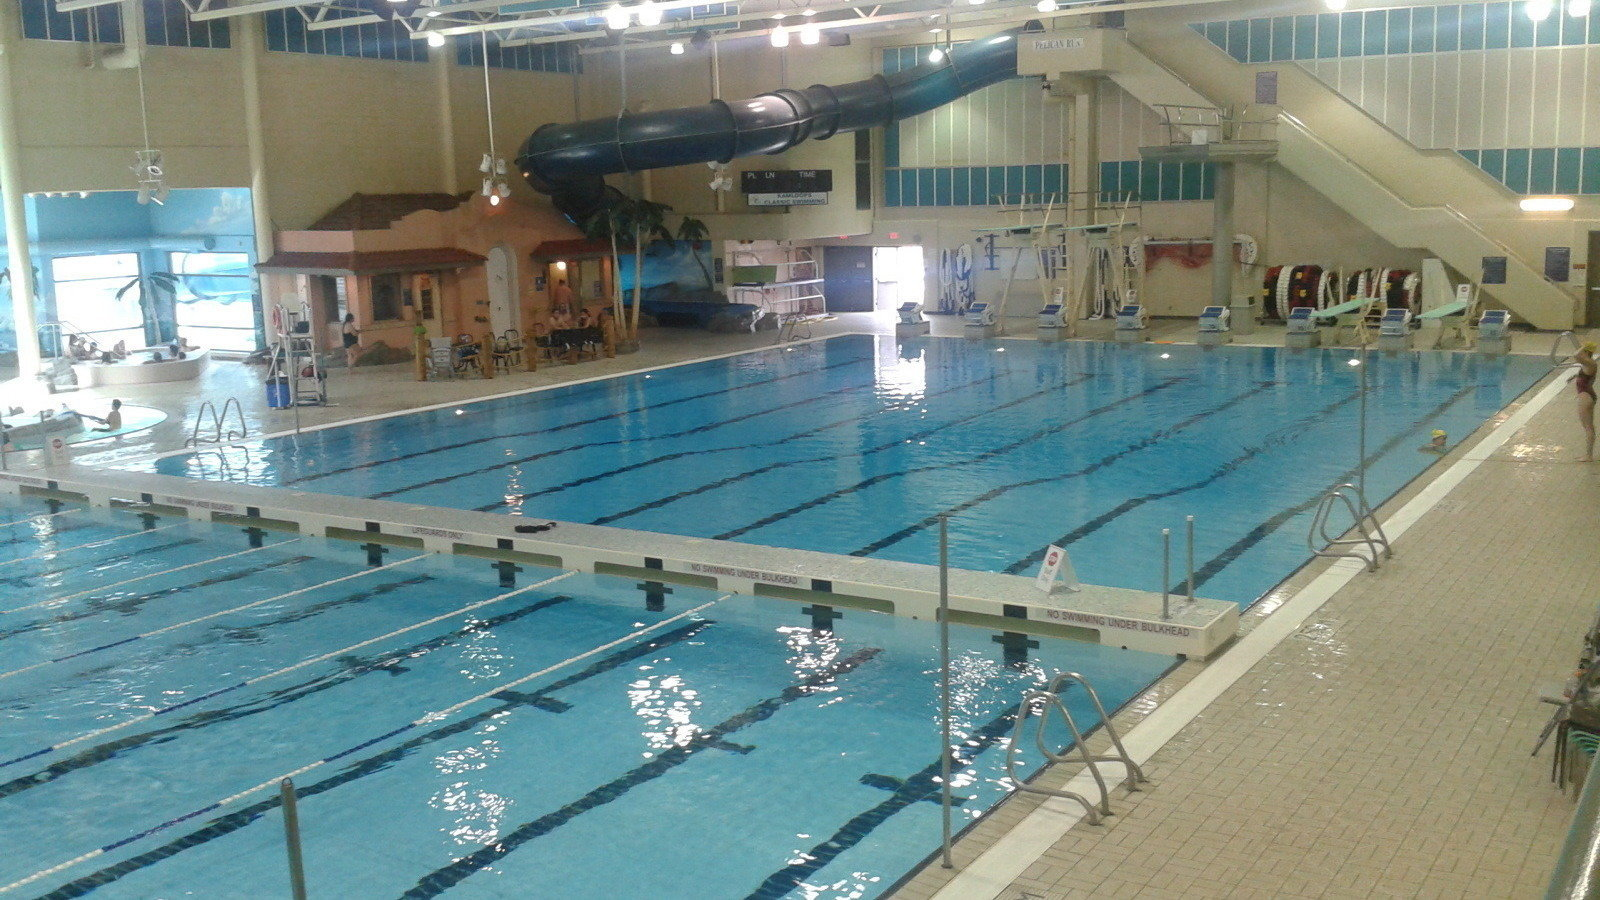 Petition City Of North Vancouver Build A 50 Meter 8 Lane Mult Purpose Pool